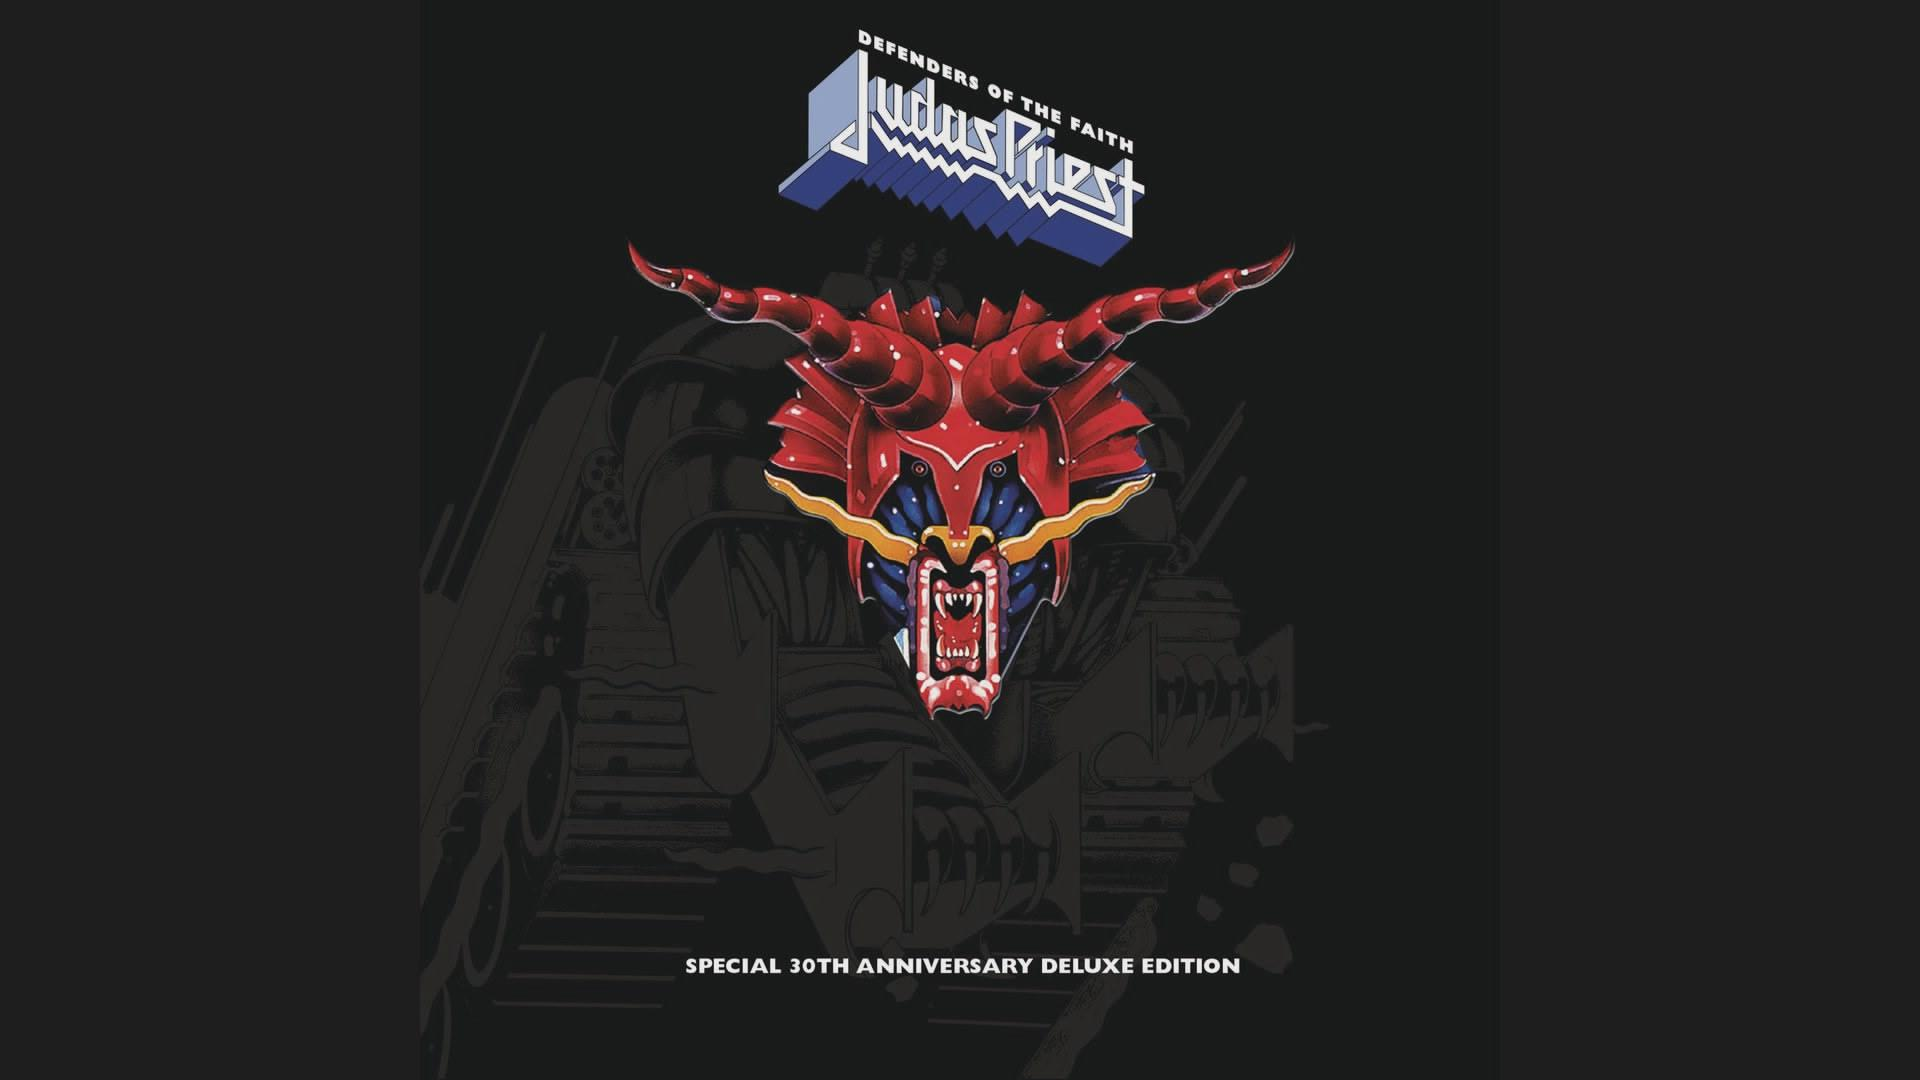 Judas Priest Wallpapers Posted By Ethan Johnson